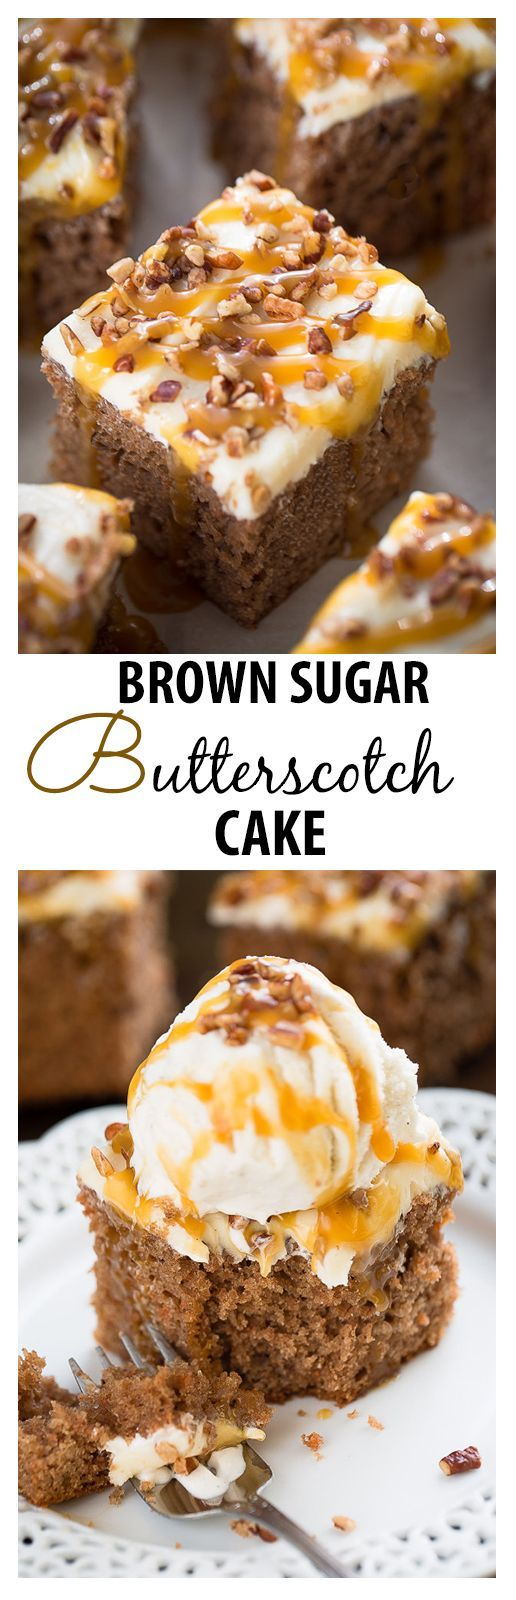 Brown Sugar Butterscotch Sheet Cake topped with brown sugar frosting ...